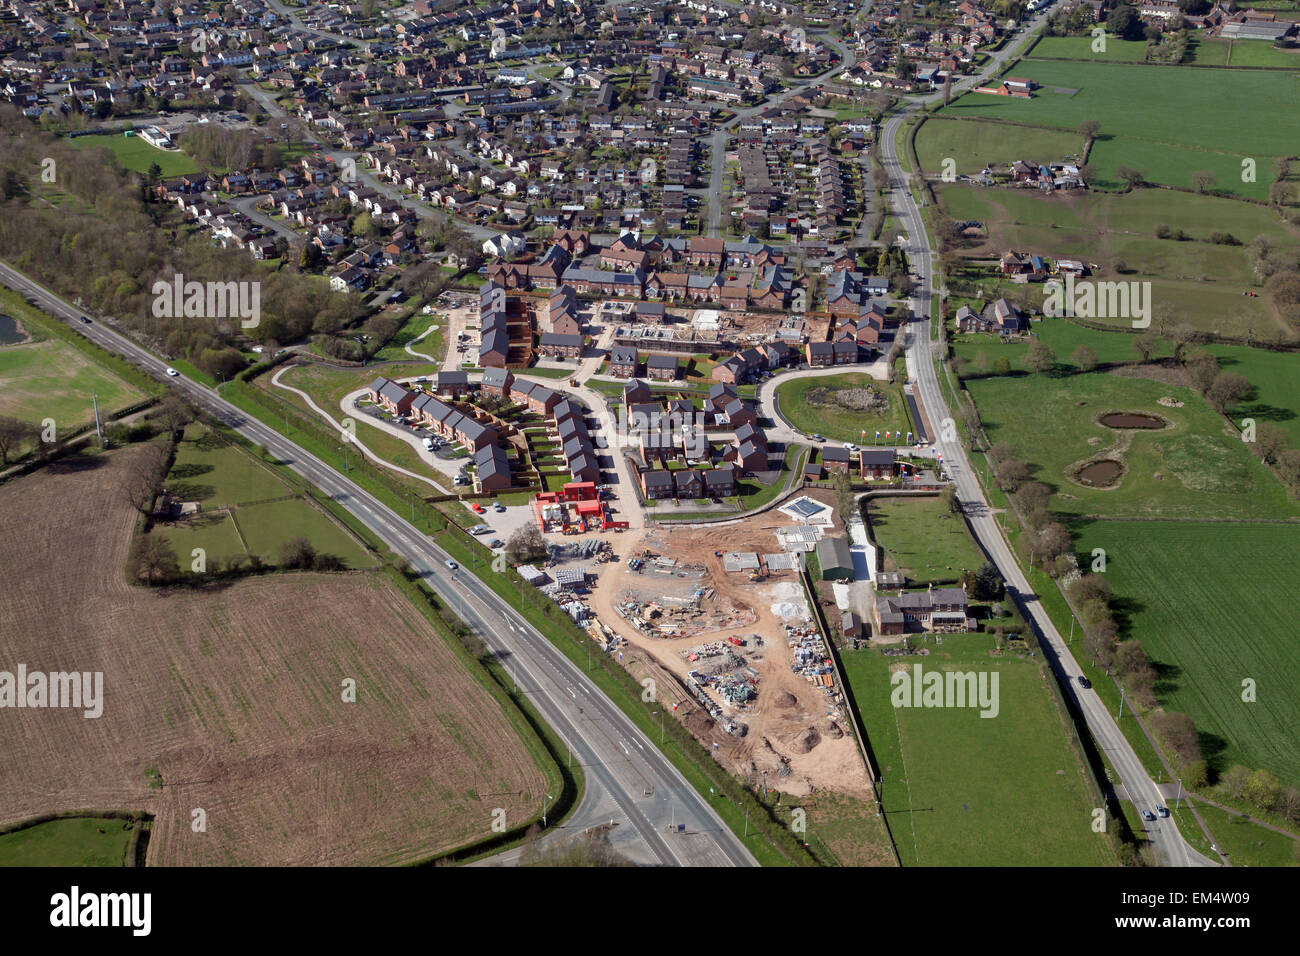 aerial view of new housing under construction in Cheshire, UK - Stock Image